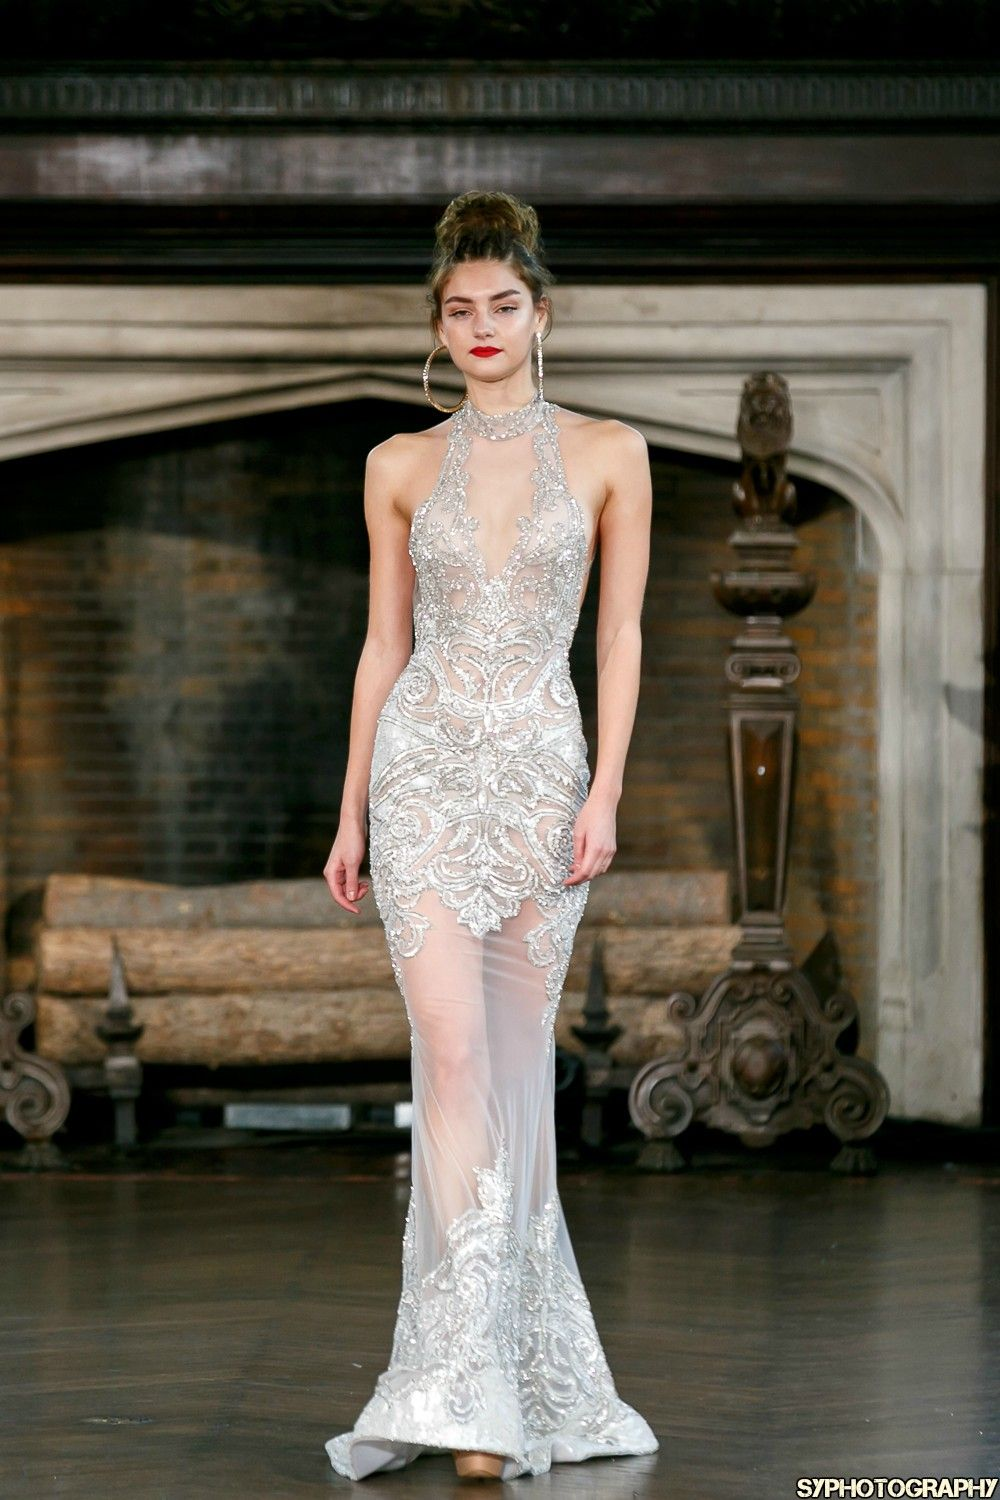 CSW's New York Bridal Week Diaries: Day Two   ChicagoStyle Weddings wedding gowns, wedding fashion, wedding dress, wedding dresses, wedding inspiration